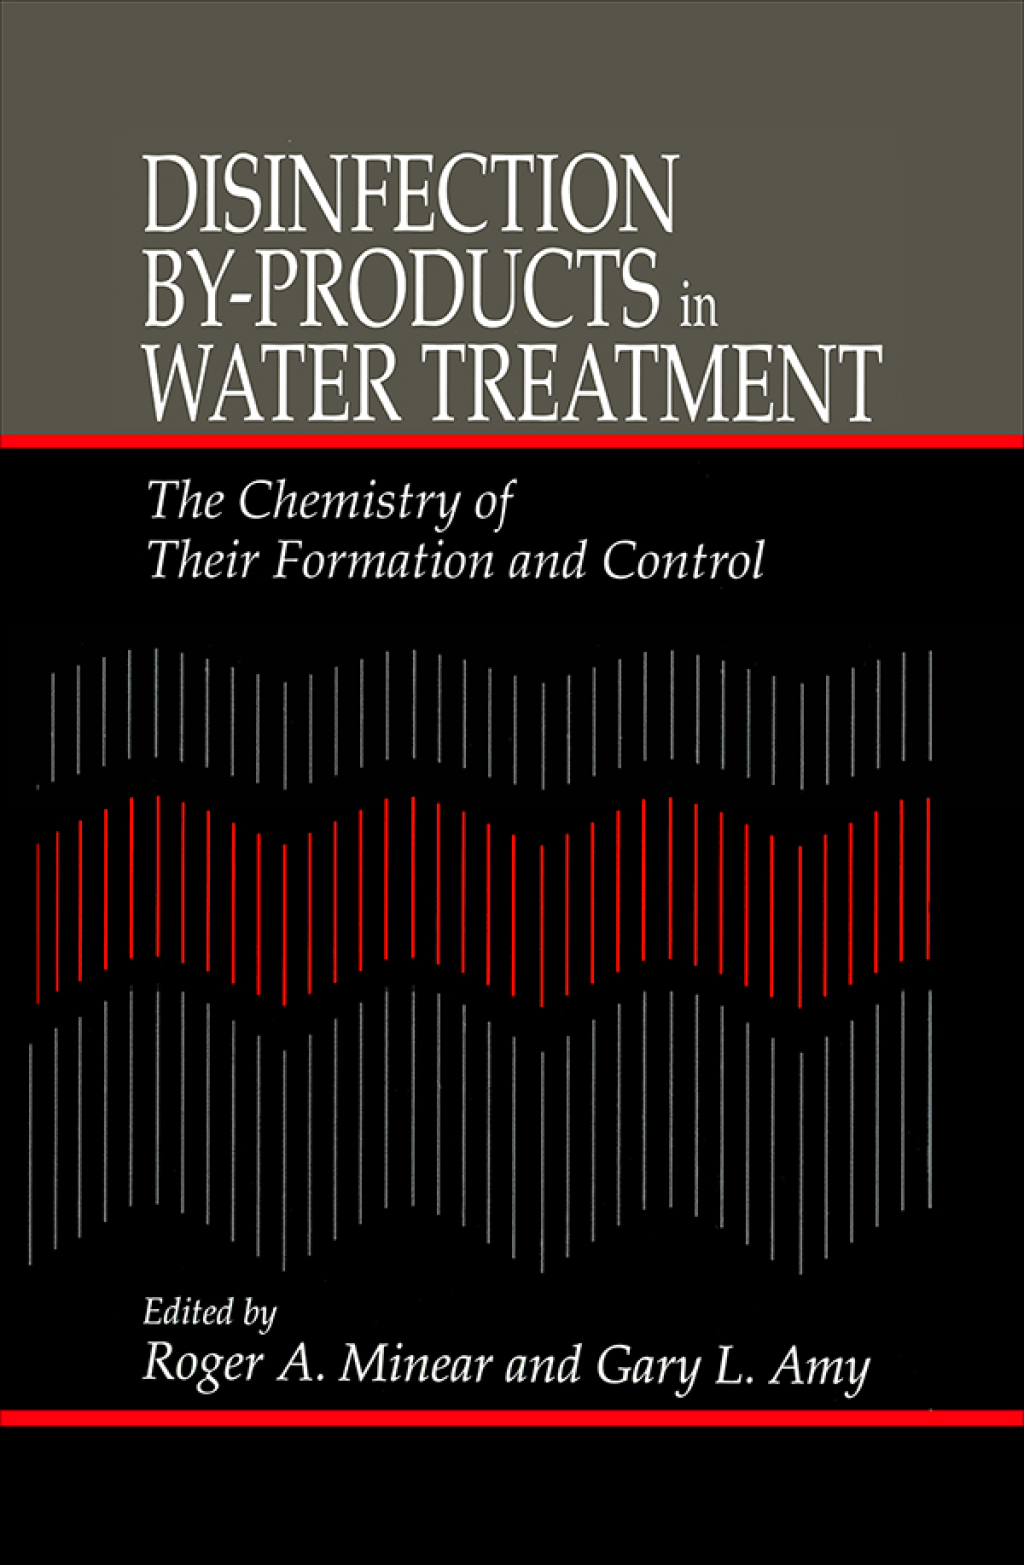 Disinfection By-Products in Water TreatmentThe Chemistry of Their Formation and Control (eBook Rental)